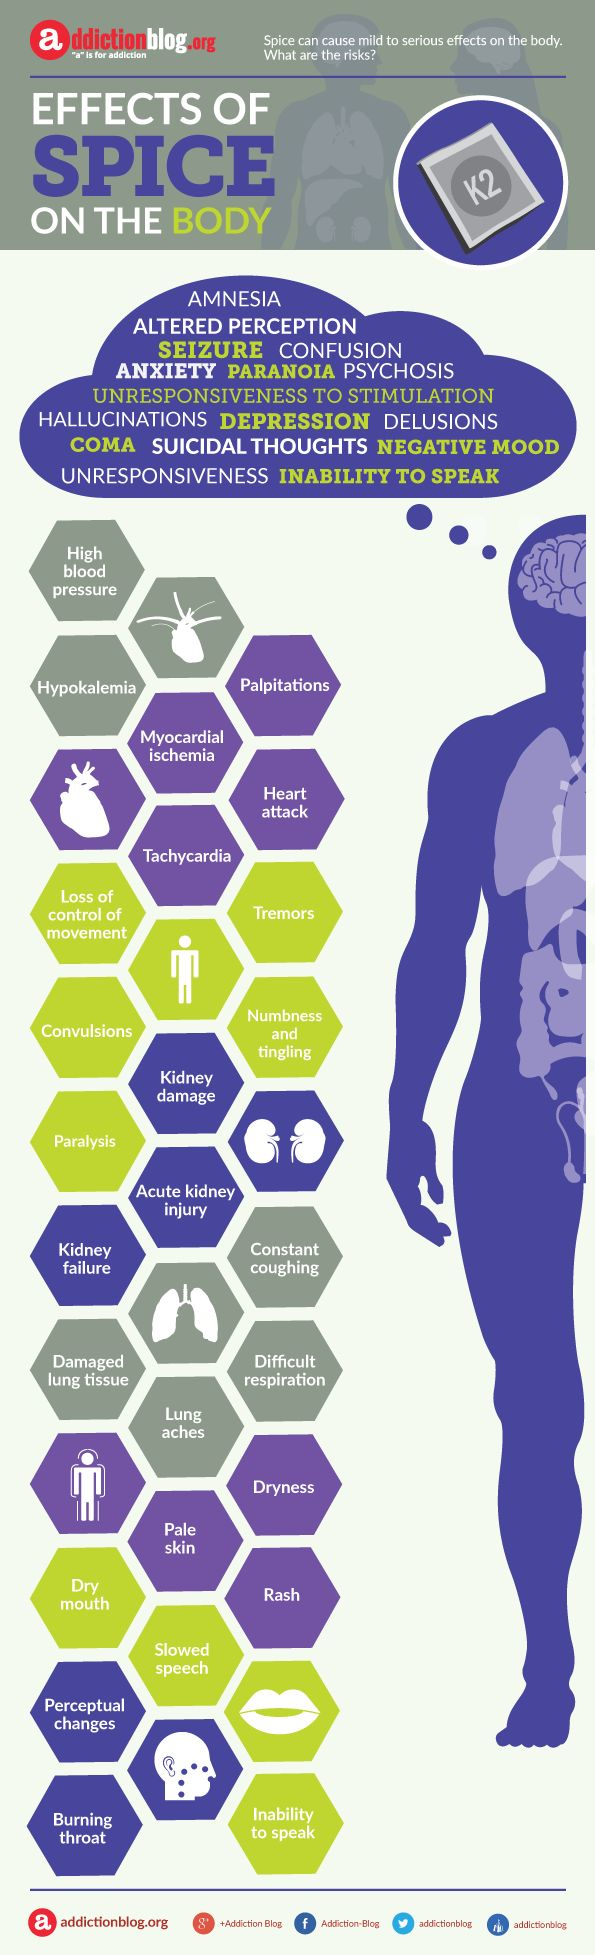 Effects of Spice – synthetic weed on the body (INFOGRAPHIC) | Addiction Blog